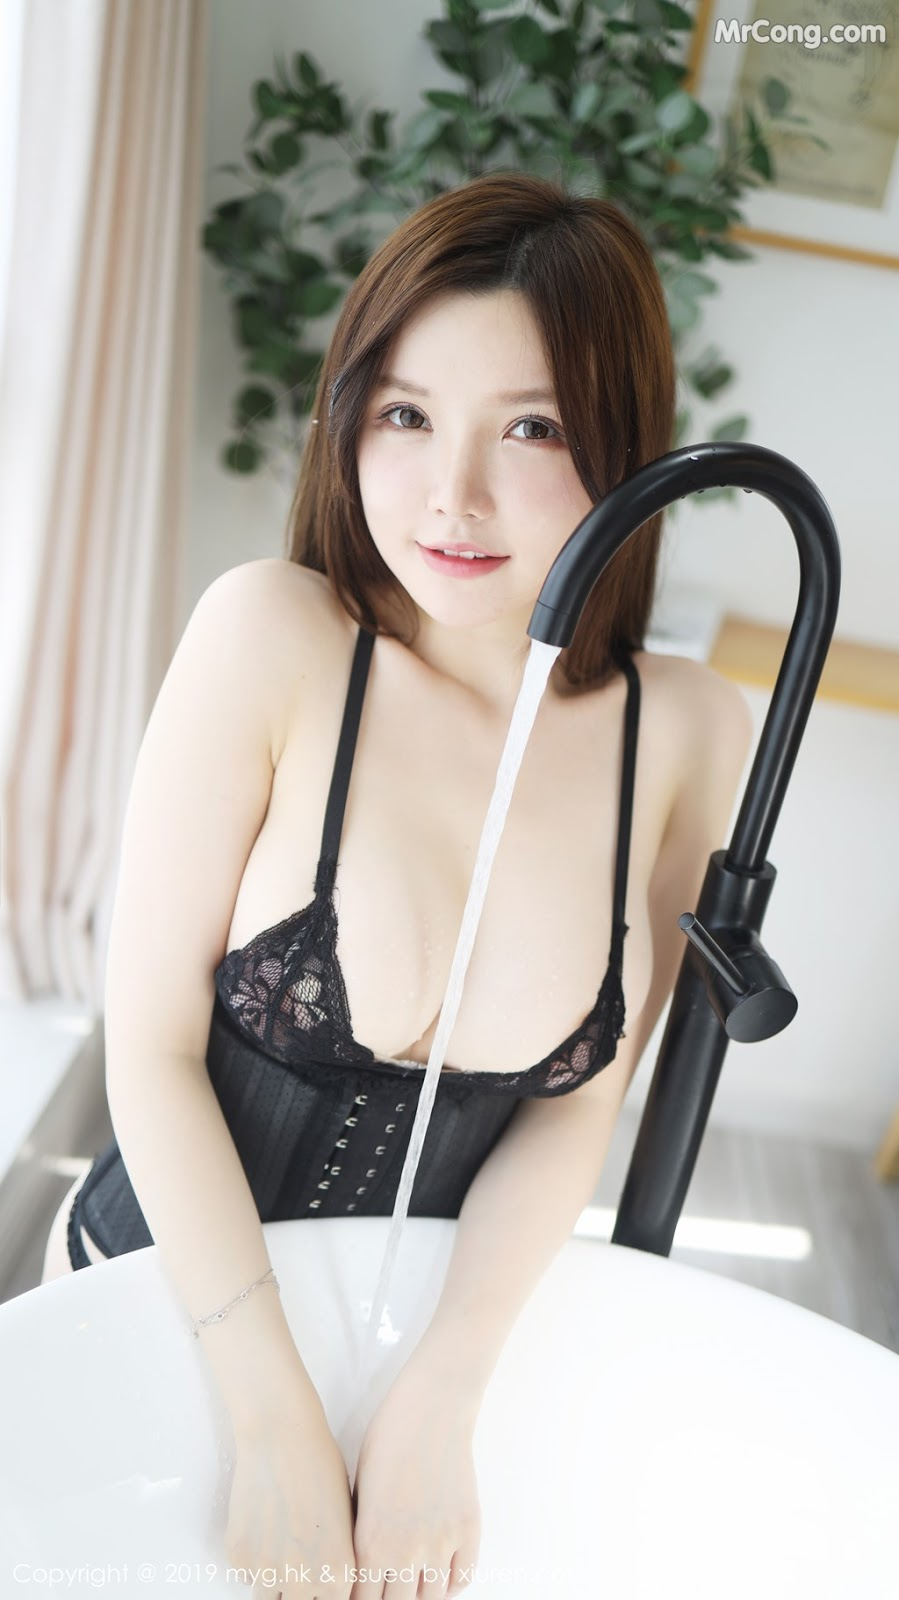 Image MyGirl-Vol.386-Mini-MrCong.com-090 in post MyGirl Vol.386: 糯美子Mini (101 ảnh)